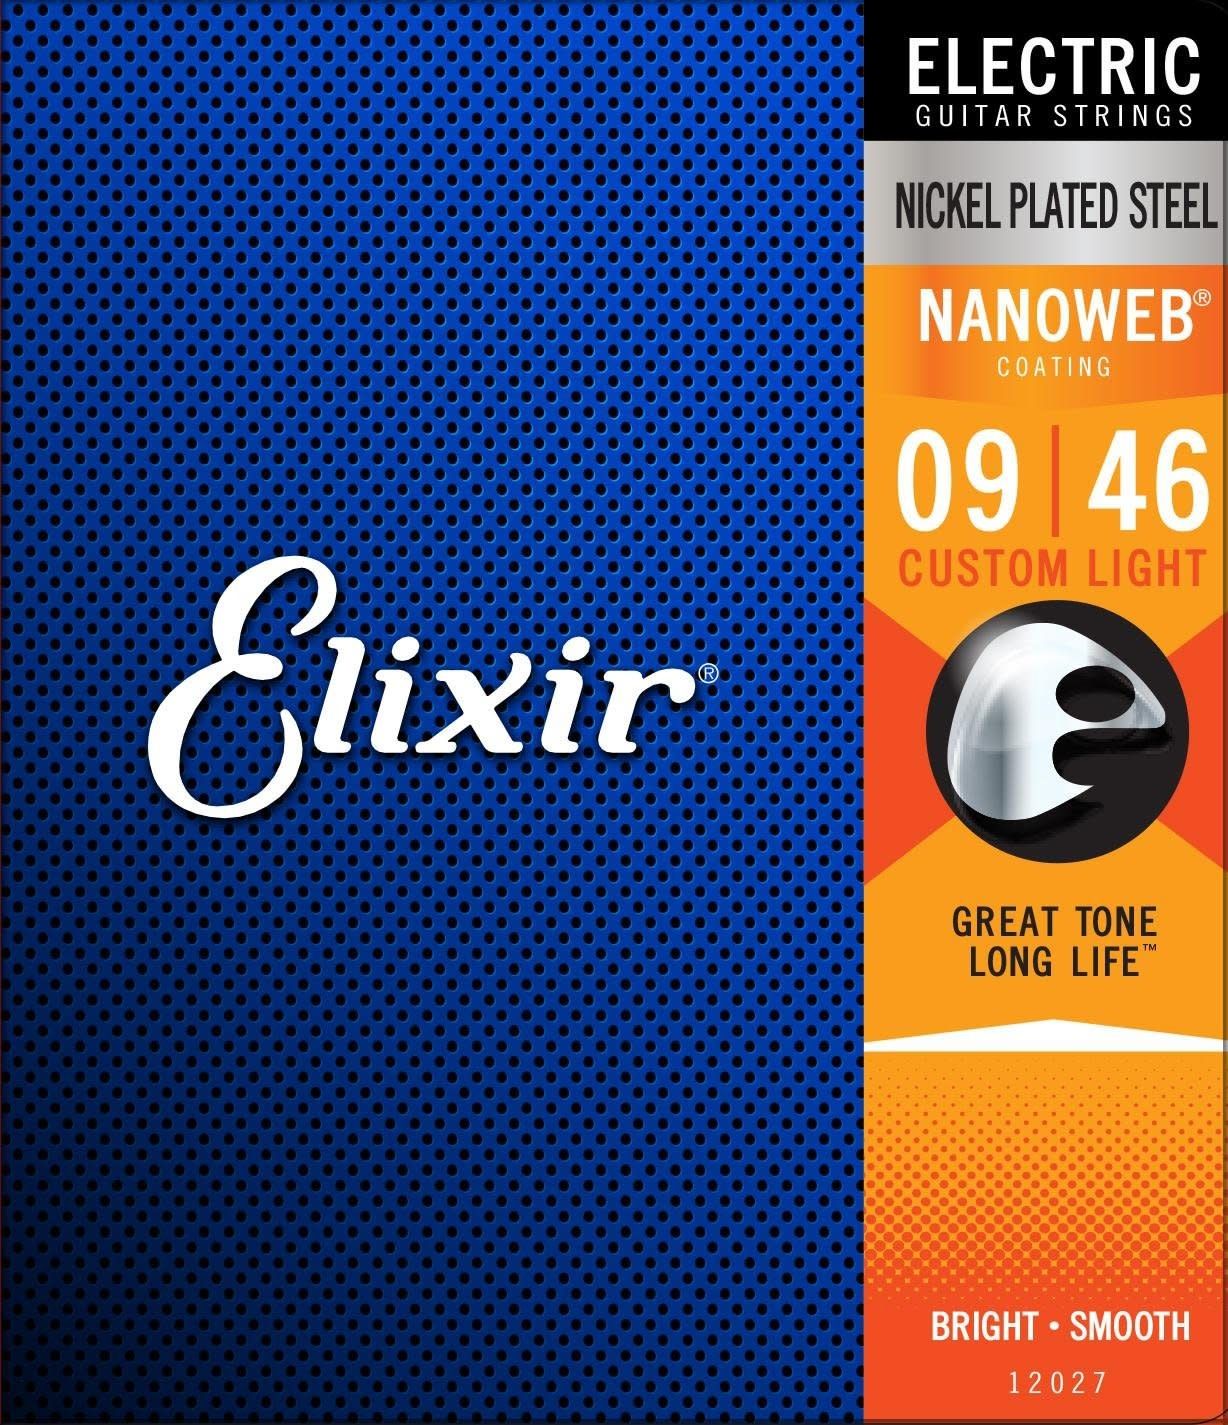 Elixir Nanoweb Nickel Custom Light Electric Guitar Strings (09-46) 12027-1